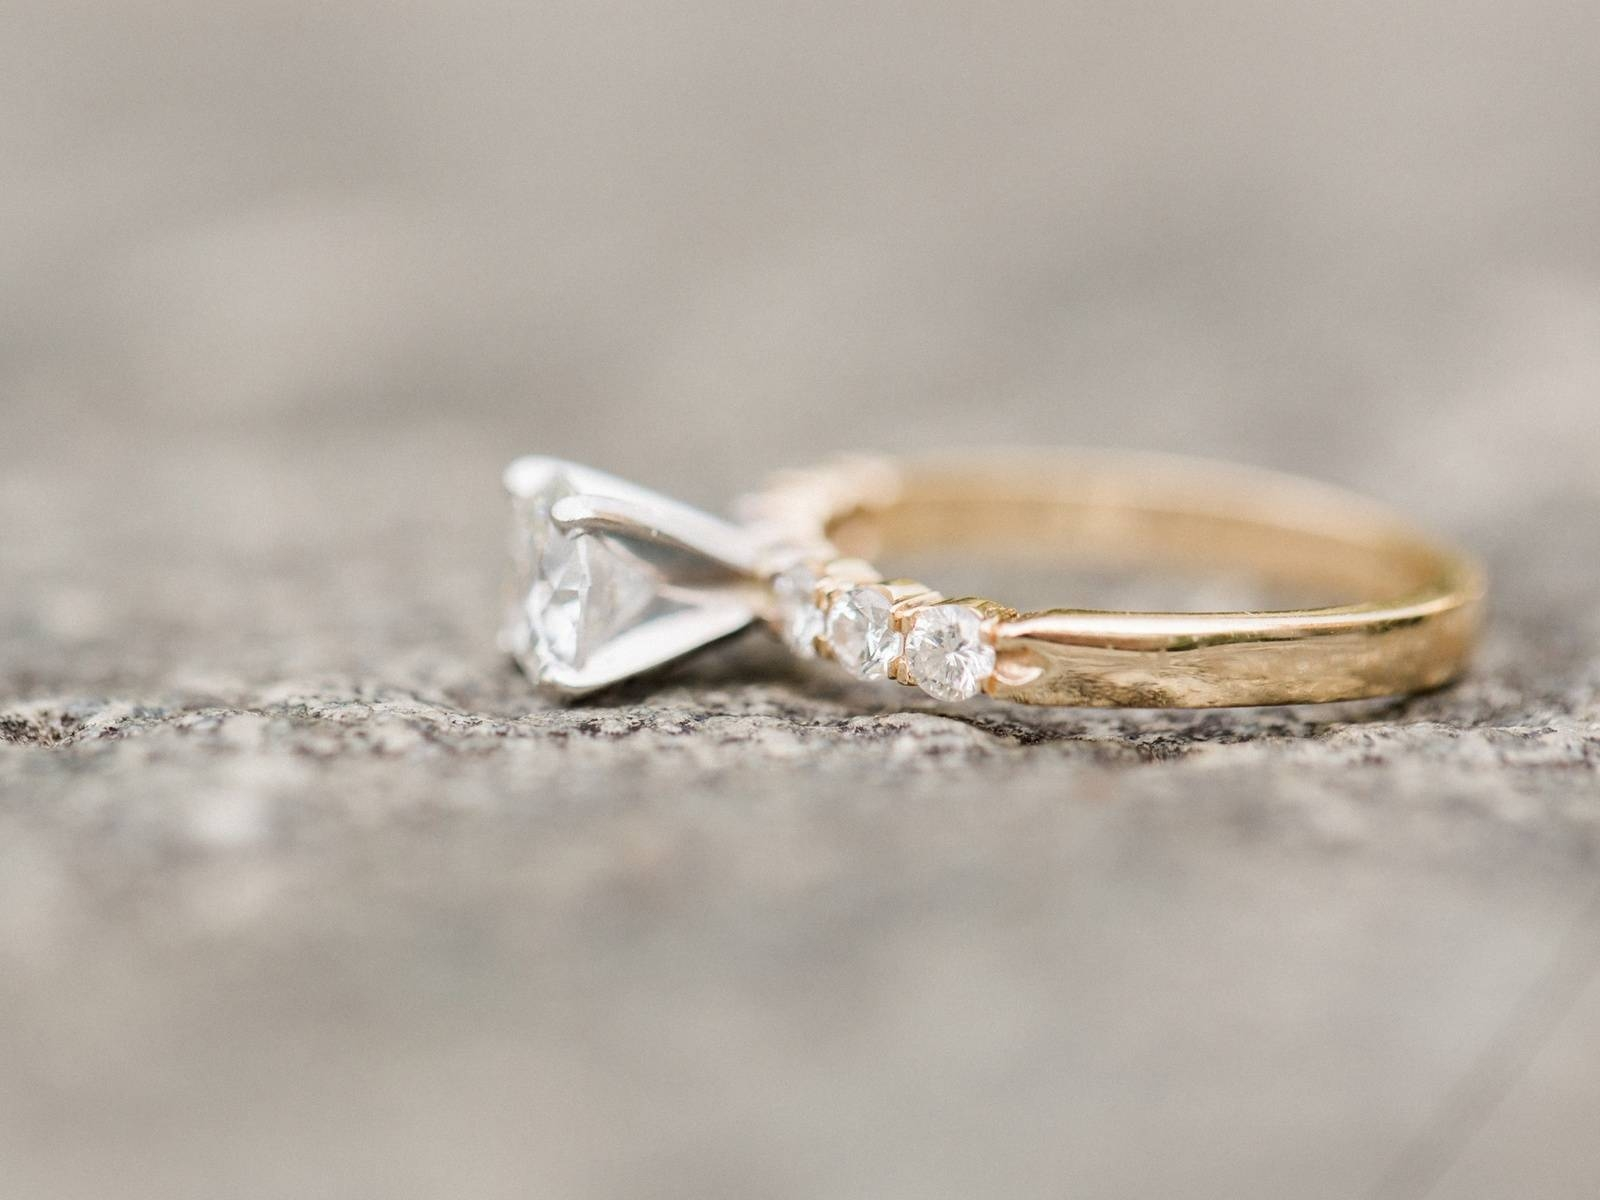 Molly Lichten Photography – Blog – Georgetown | Christine Intended For Washington Dc Engagement Rings (View 10 of 15)